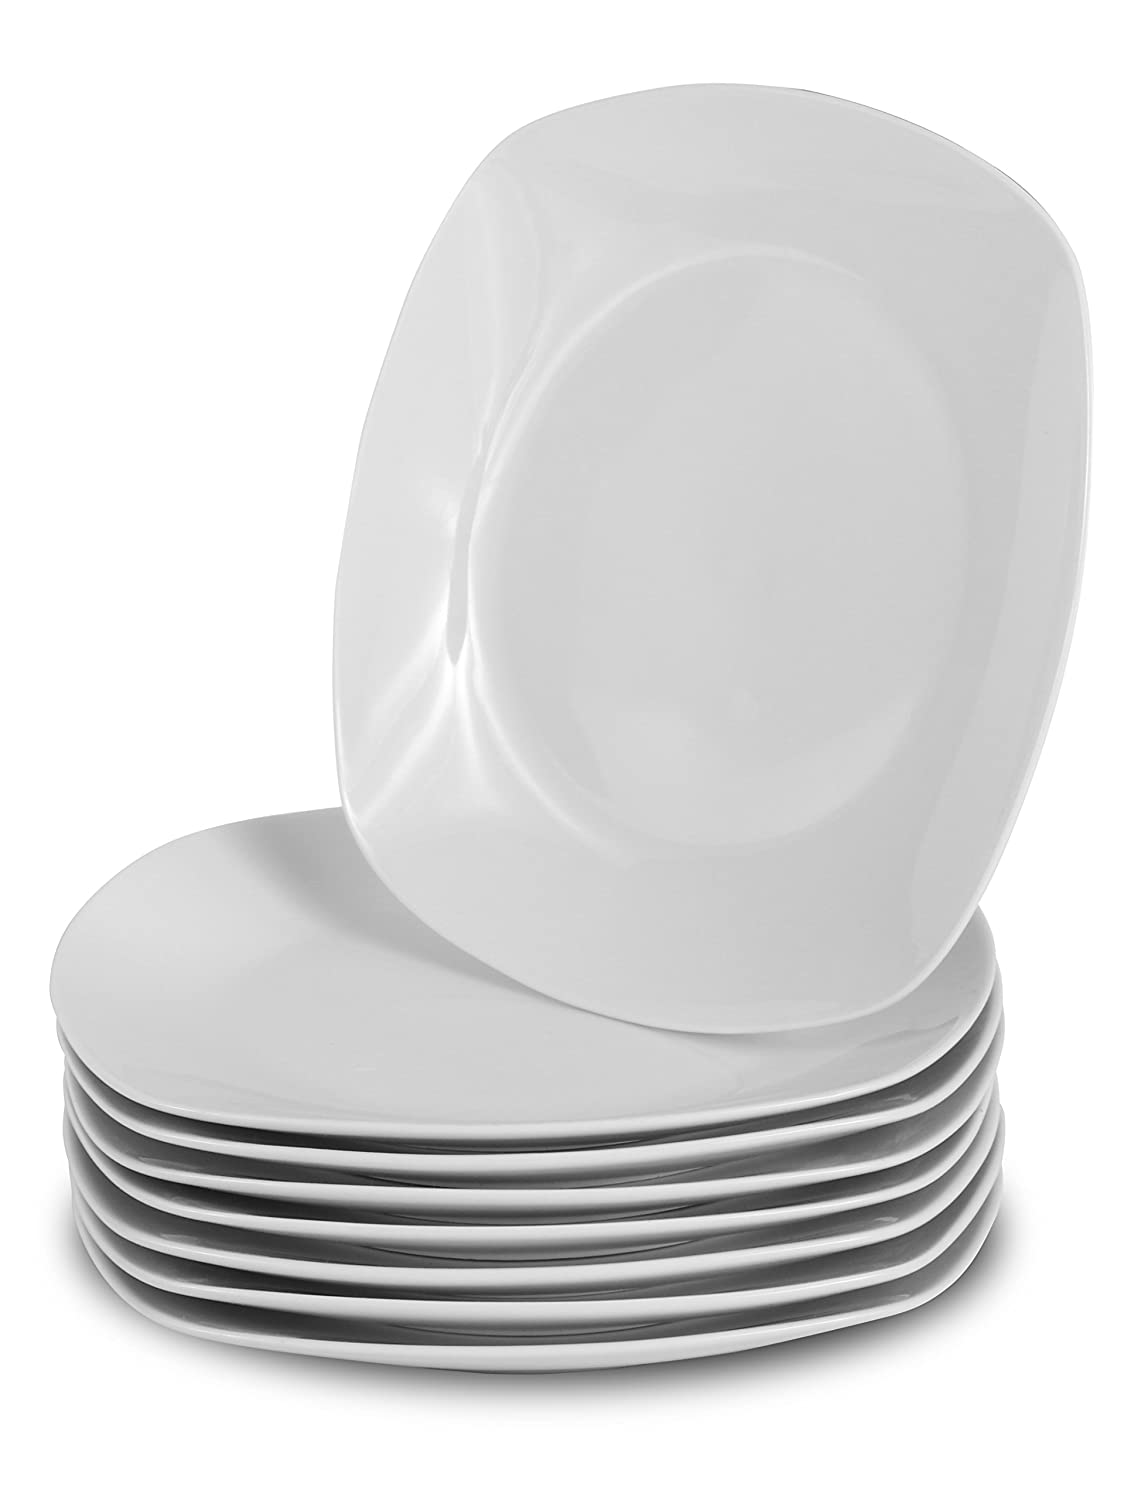 Klikel 8 White Dinner Plates | Porcelain Square Dinnerware | 10 Inch Classic Solid Coupe Style Plate Set